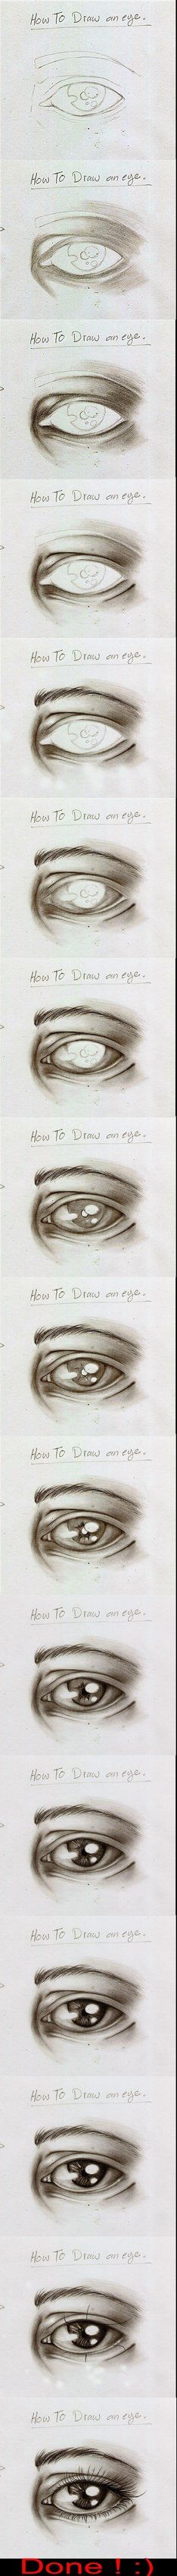 How To Draw an Eye by ~Simiko on deviantART